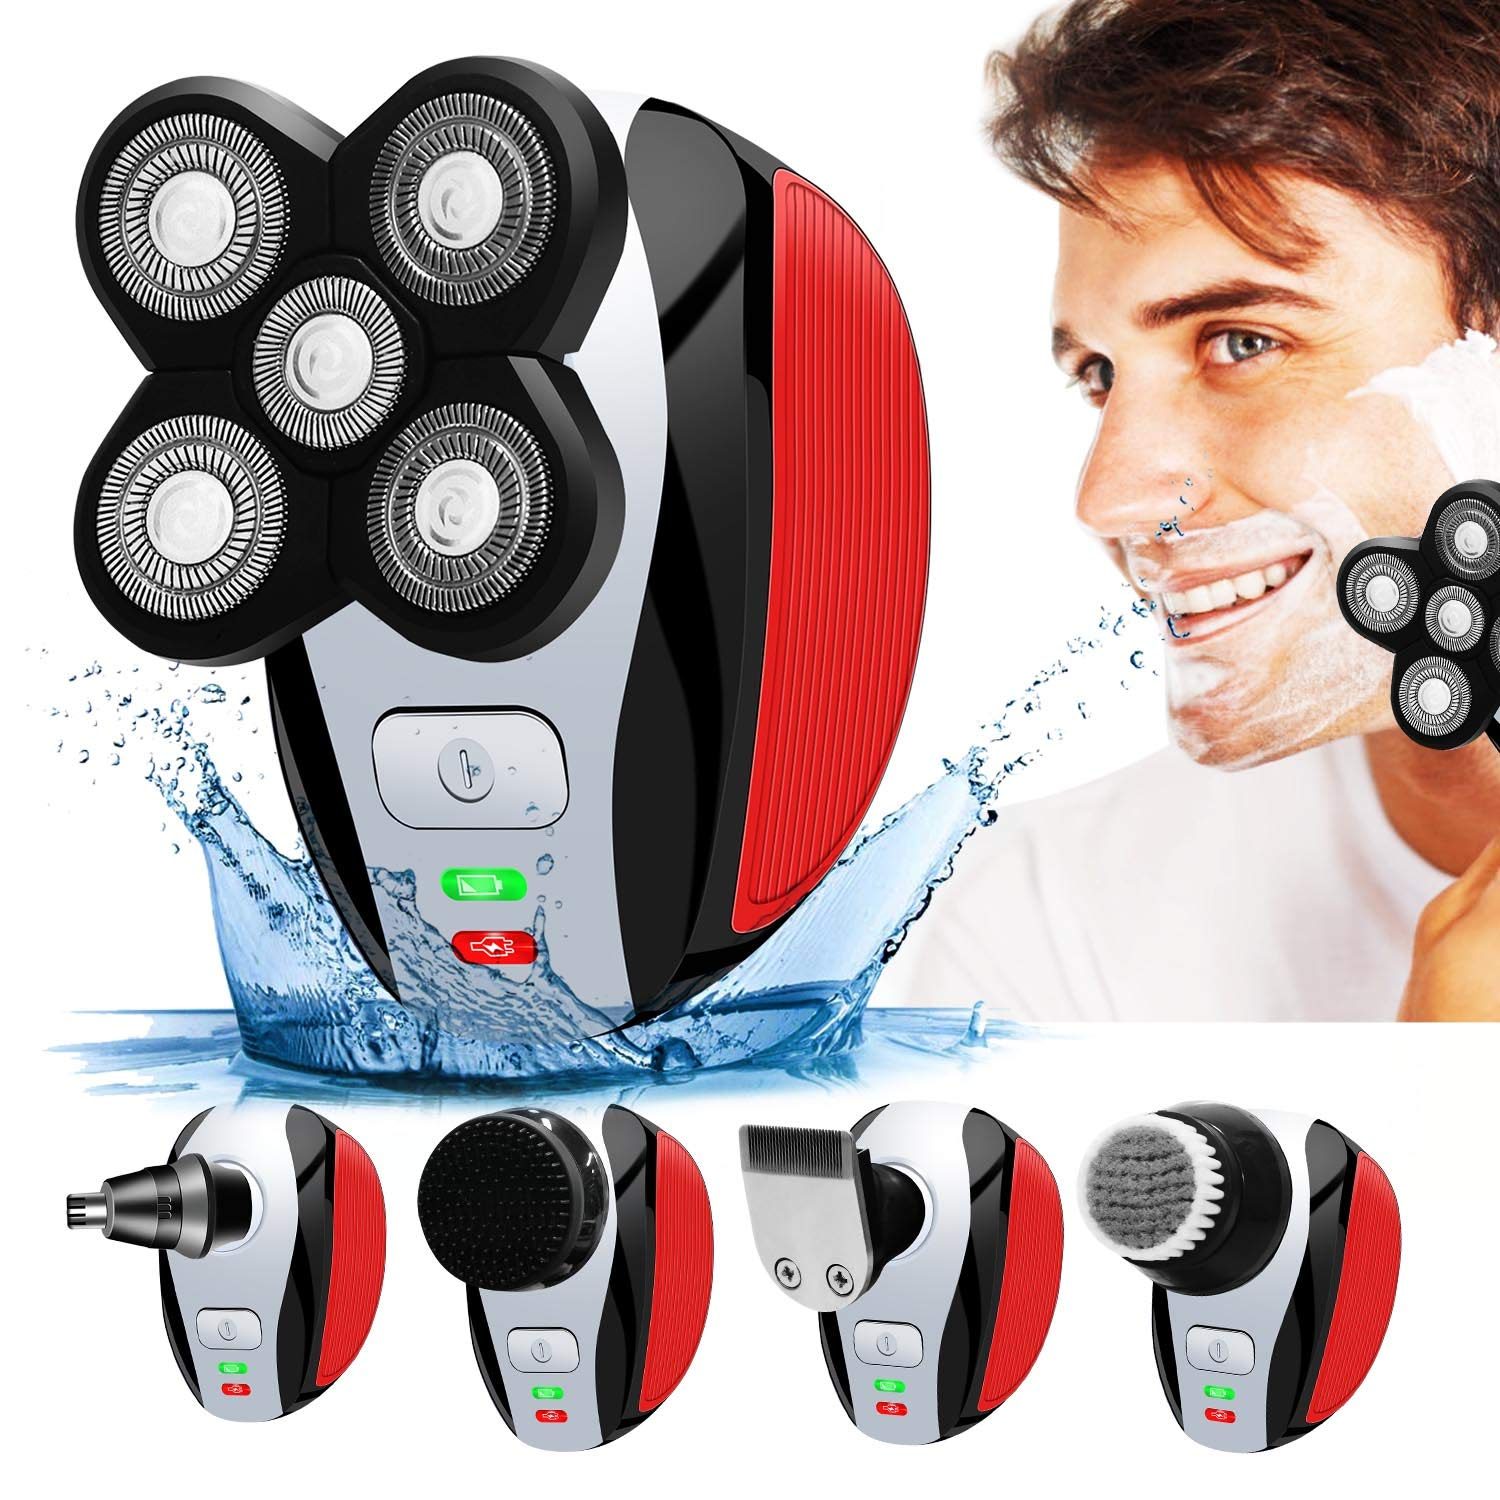 Mens Electric Shaver with pop up Trimmer, Wet and Dry Electric Razor USB Rechargeable for Trim Beard, Face and Bald Head Shaving A-TION